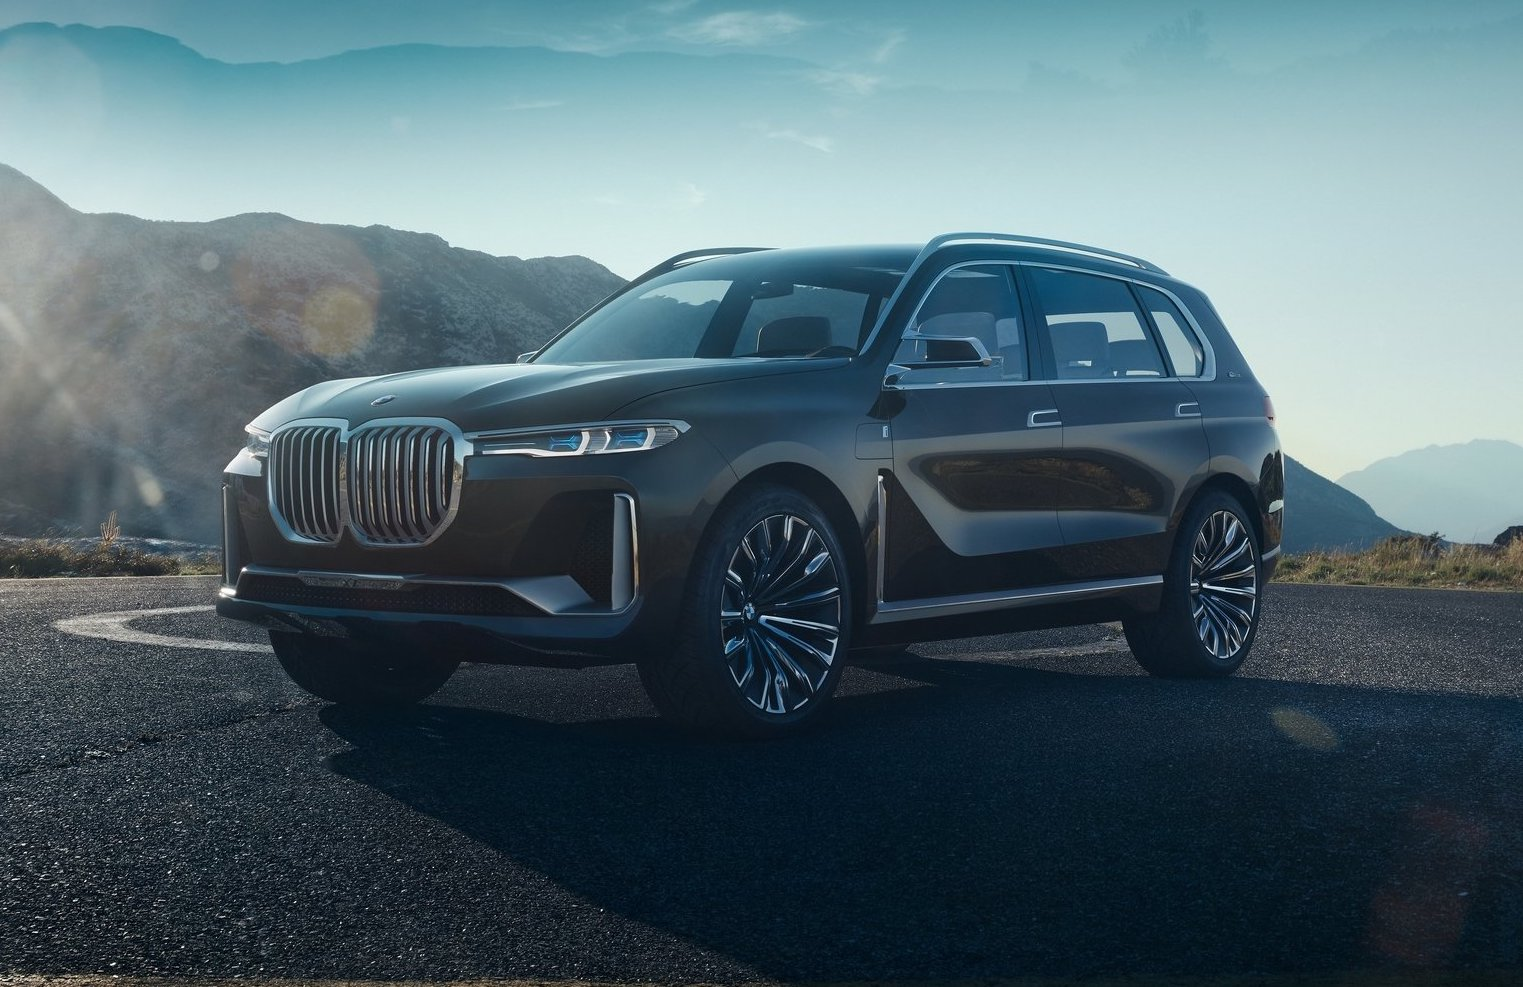 2017 Suvs Worth Waiting For >> Top 10 Best Luxury Suvs Worth Waiting For In 2018 Beyond